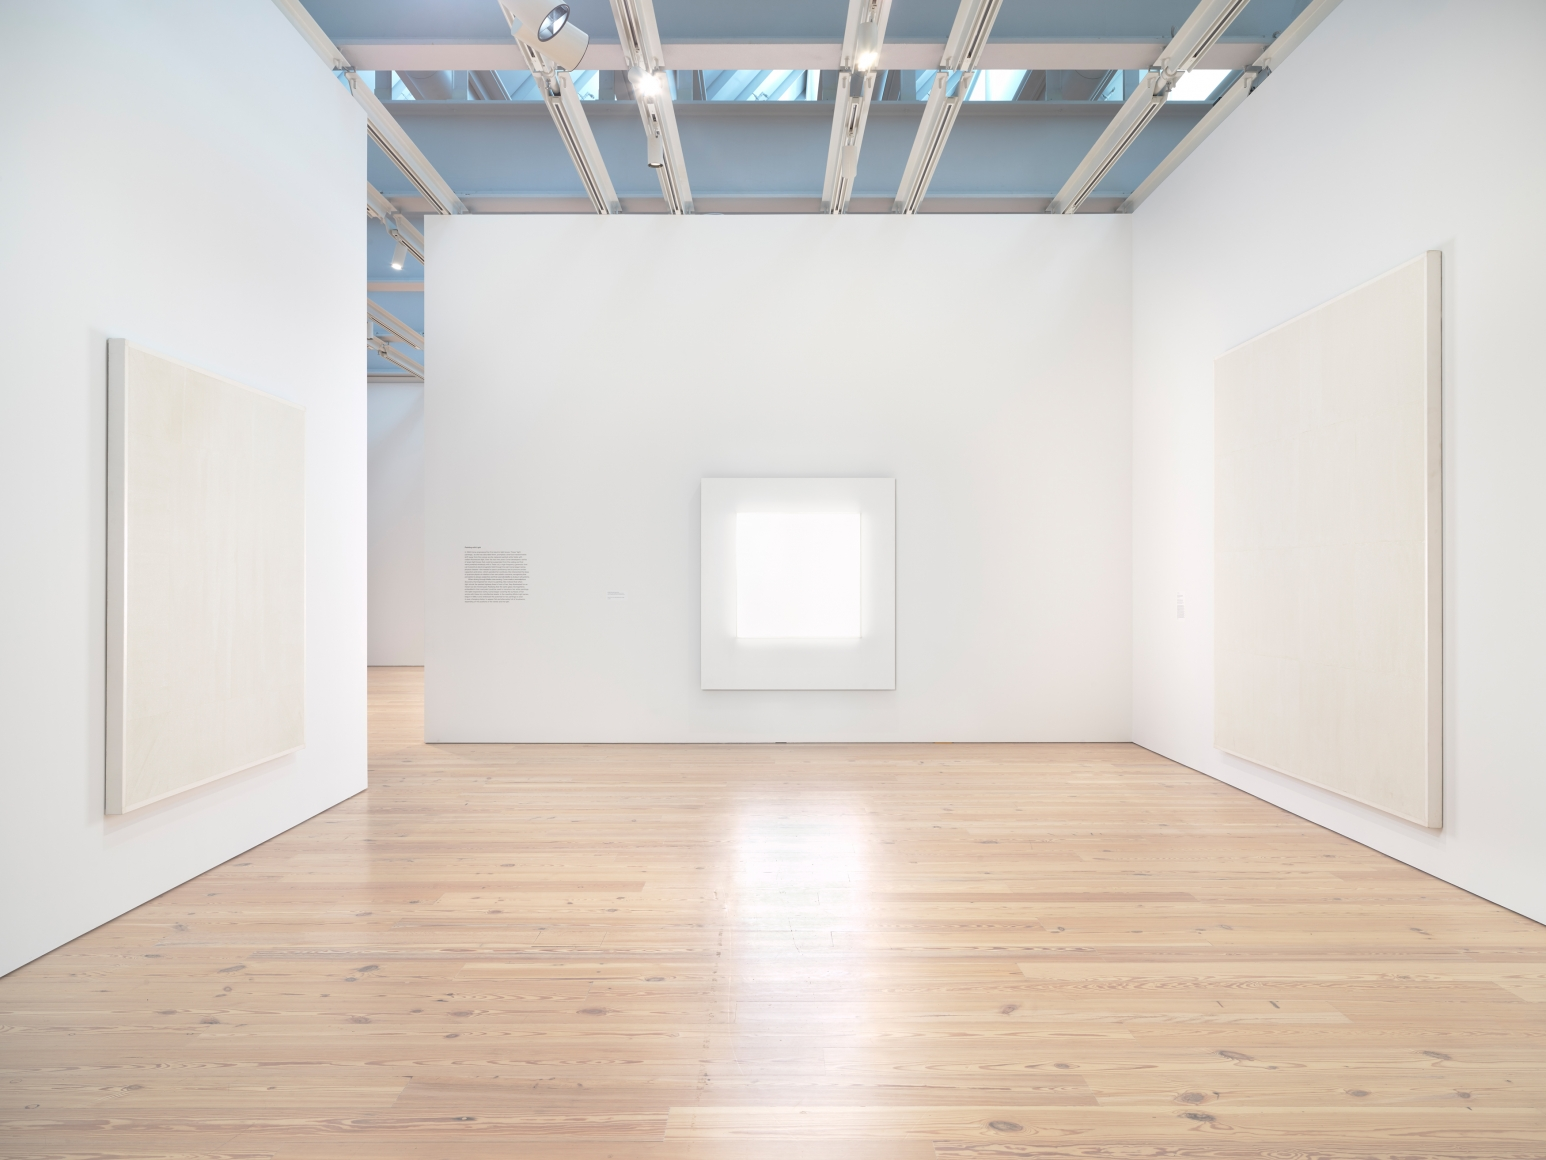 Installation photo of the 2018 exhibition Mary Corse: A Survey in Light at the Whitney Museum of American Art, New York, view 5